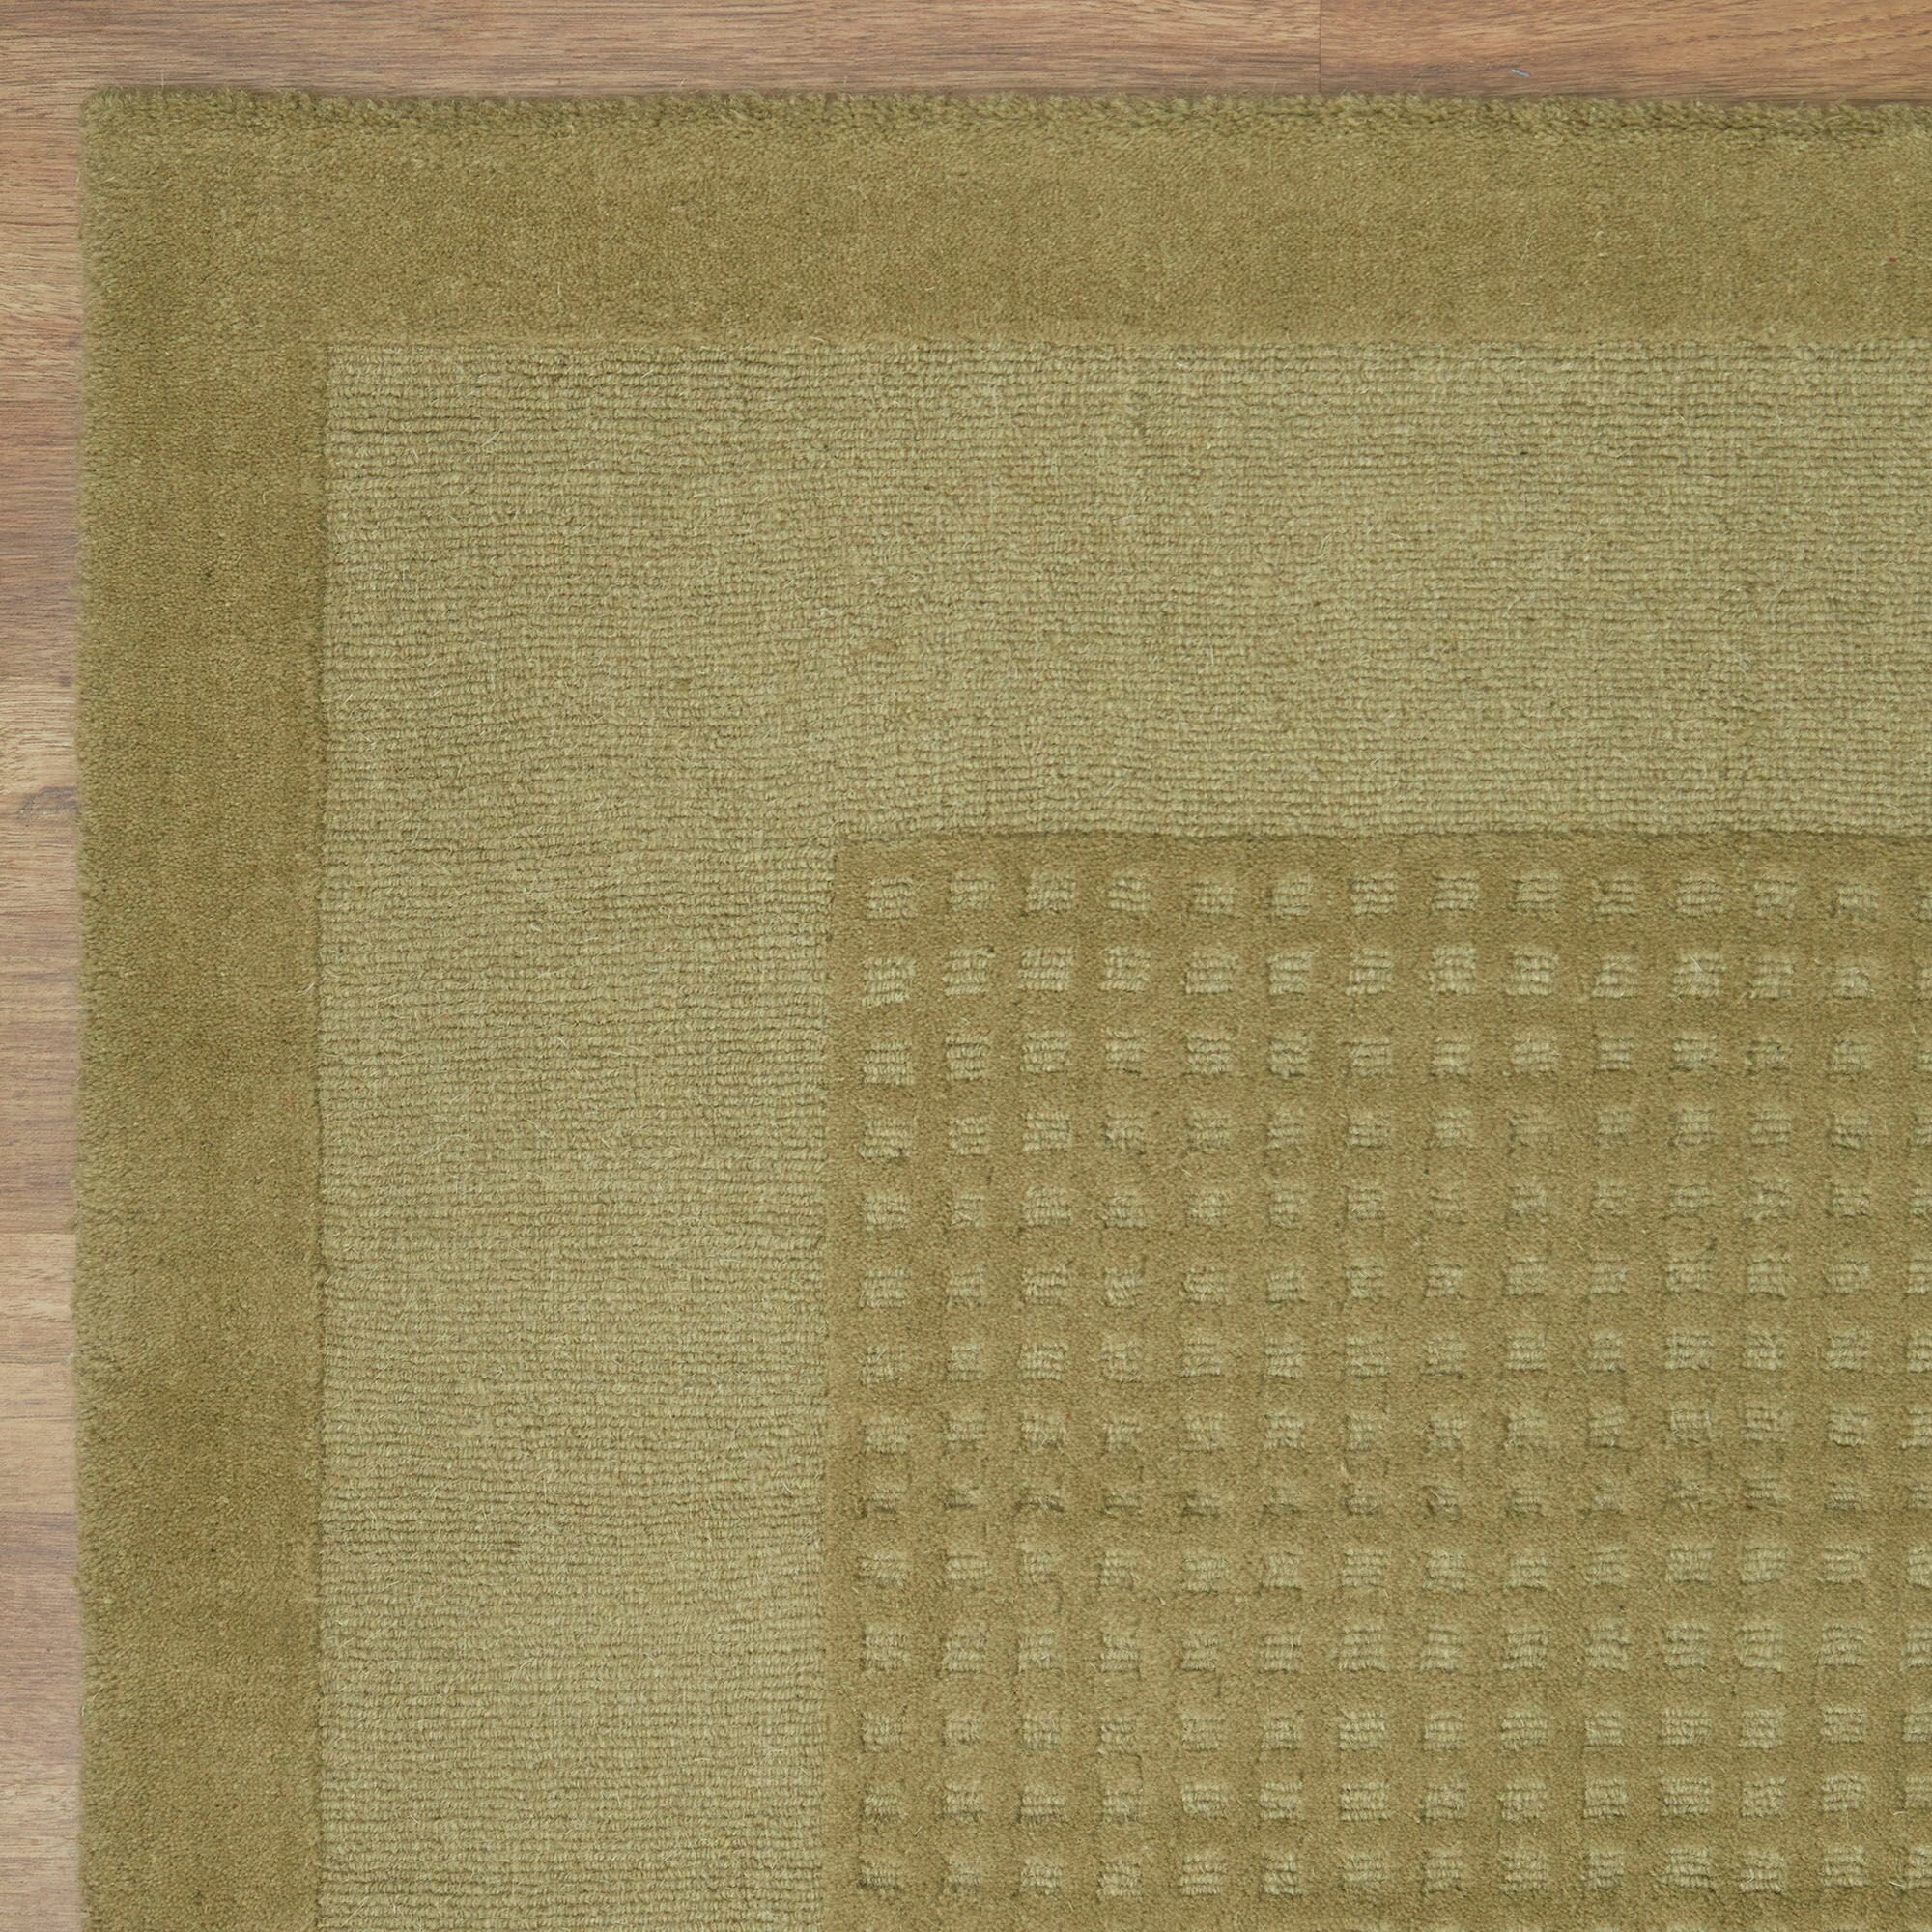 Peabody Sage Area Rug Rug Size: Rectangle 8' x 10'6